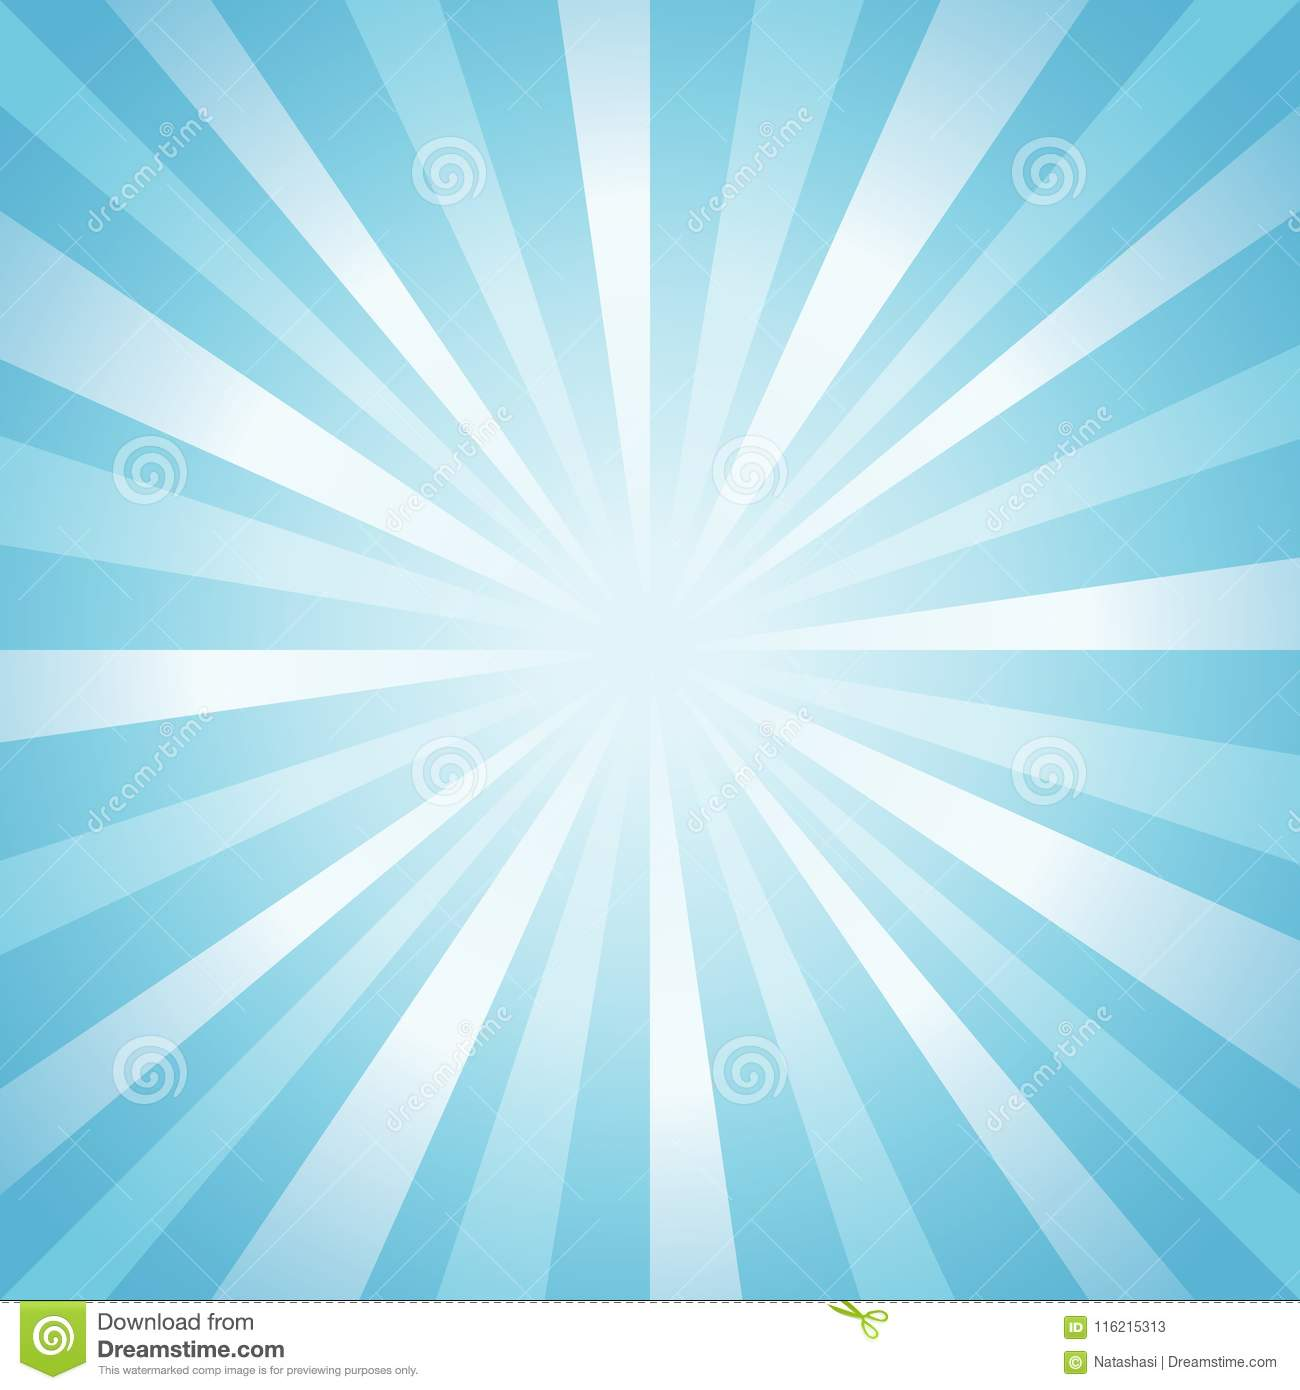 Abstract soft light Blue rays background. Vector